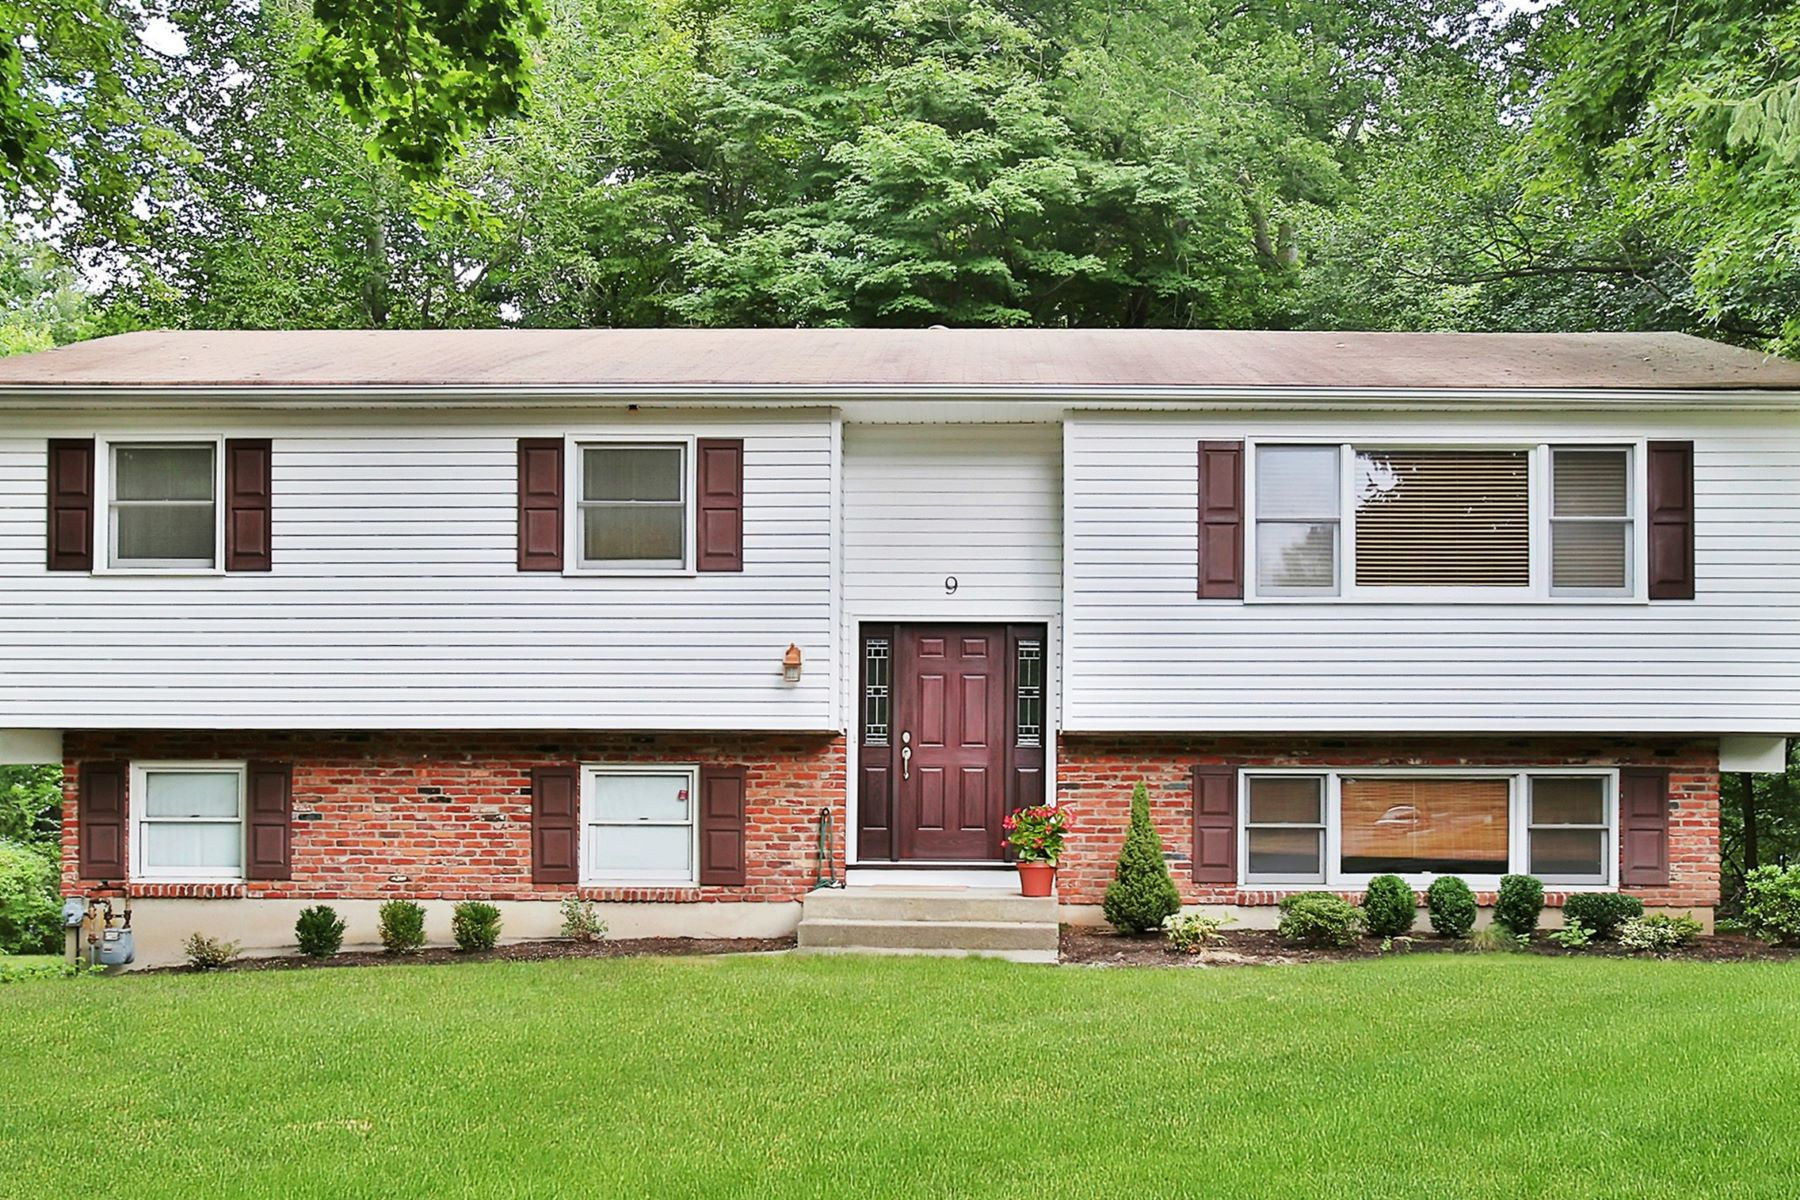 Single Family Home for Sale at Lovely New City Home 9 Verona Court New City, New York 10956 United States